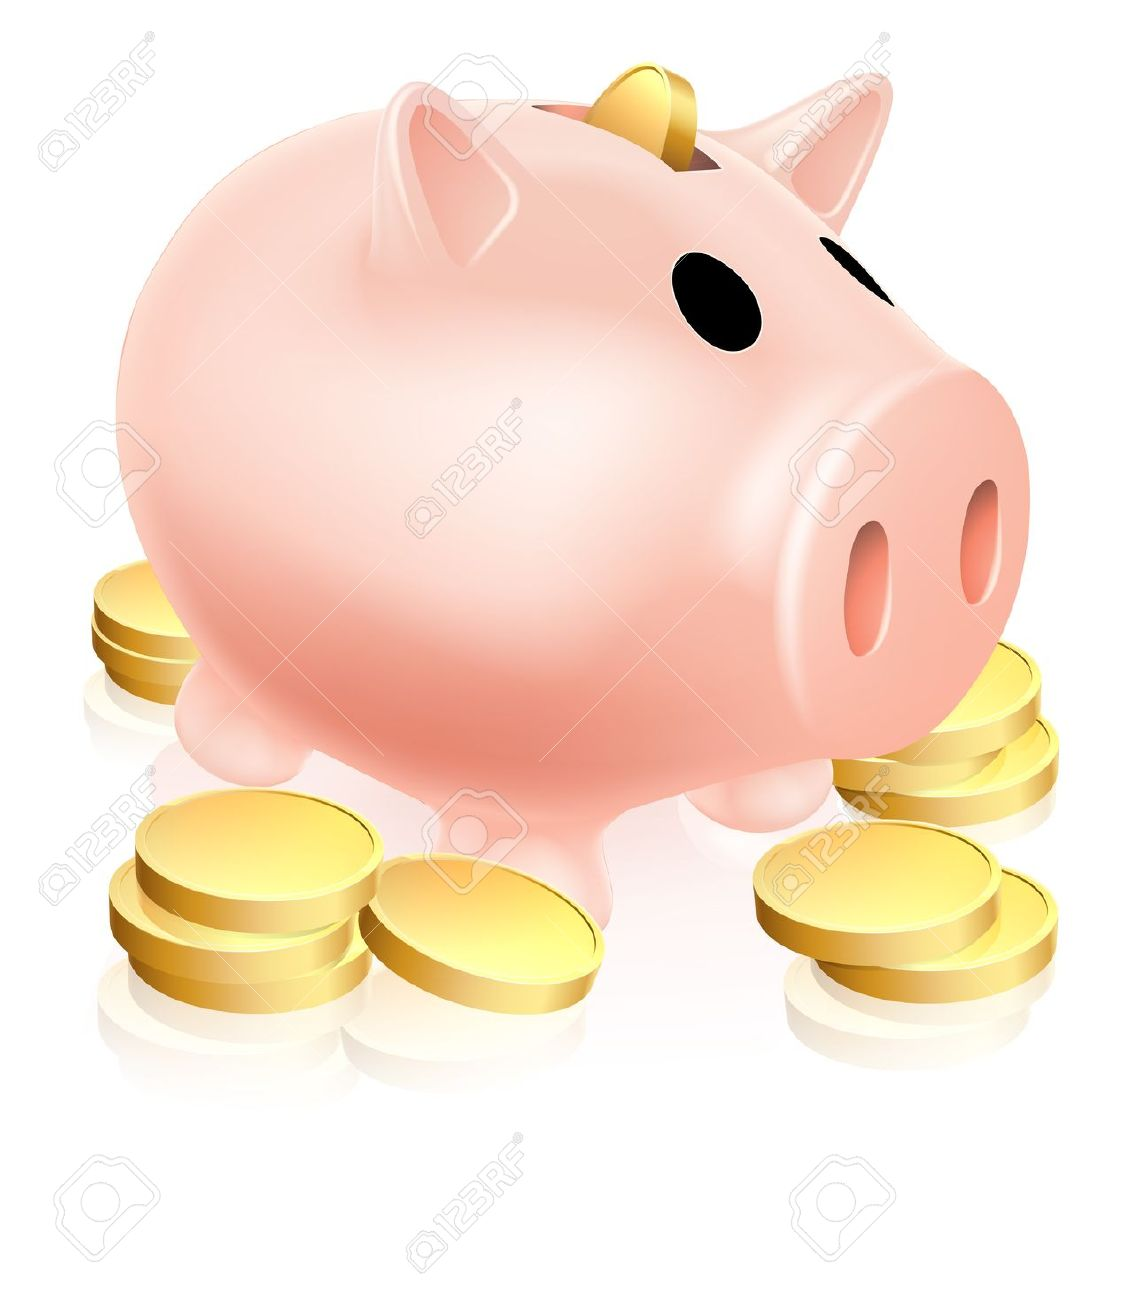 Illustration Of A Piggy Bank Money Box With Gold Coins Around.